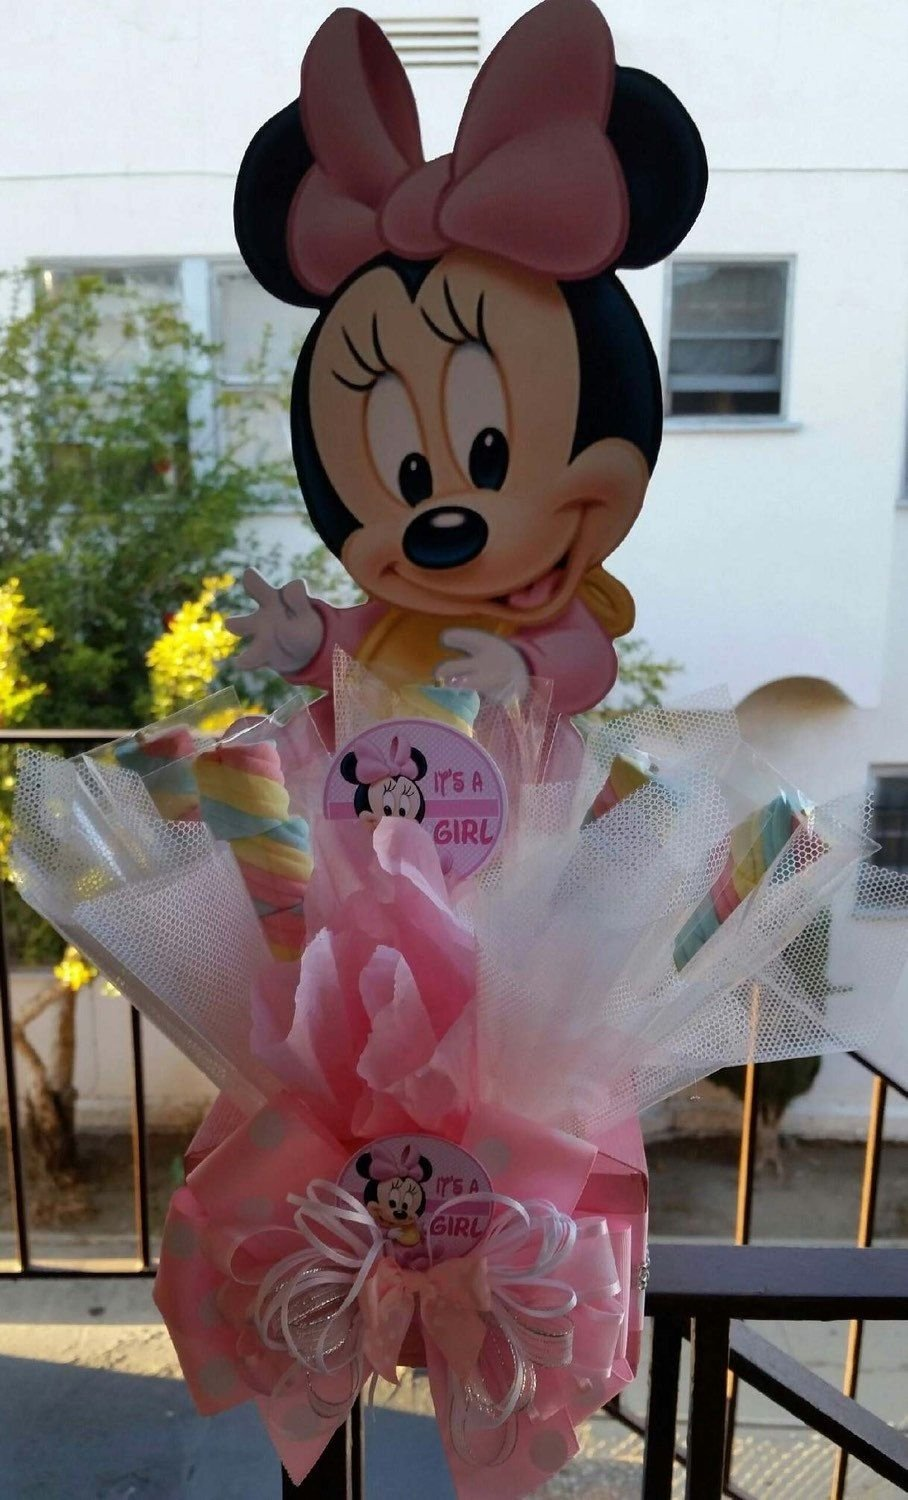 10 Perfect Baby Minnie Mouse Birthday Party Ideas baby minnie mouse centerpiece with marshmallows birthday party